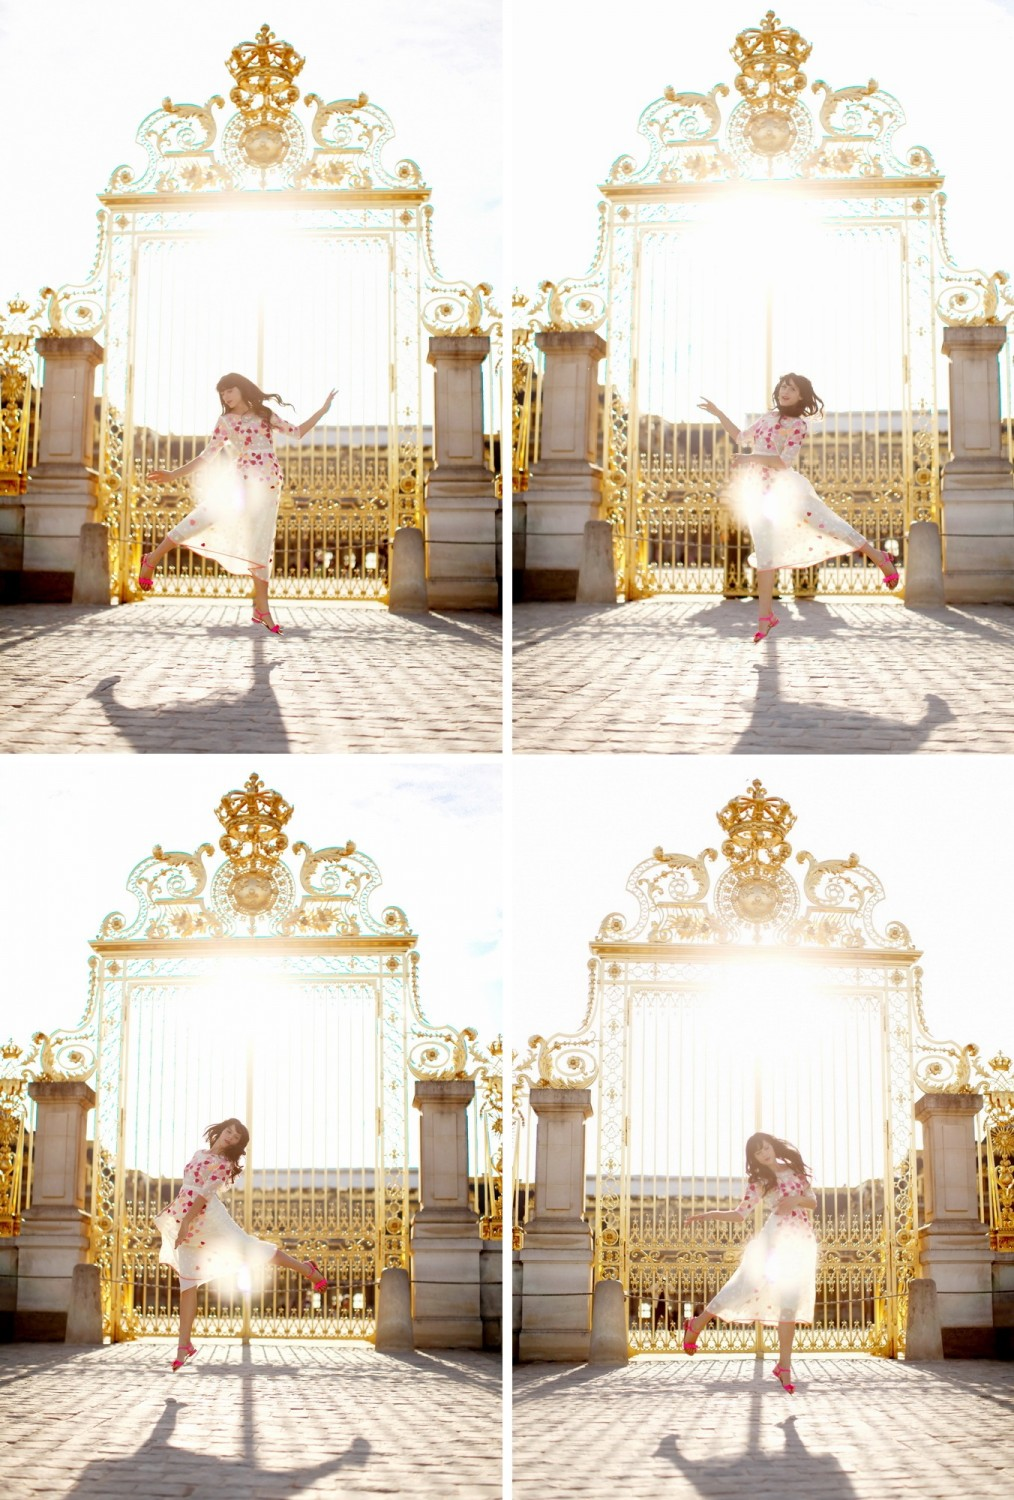 Versailles - The Cherry Blossom Girl 27